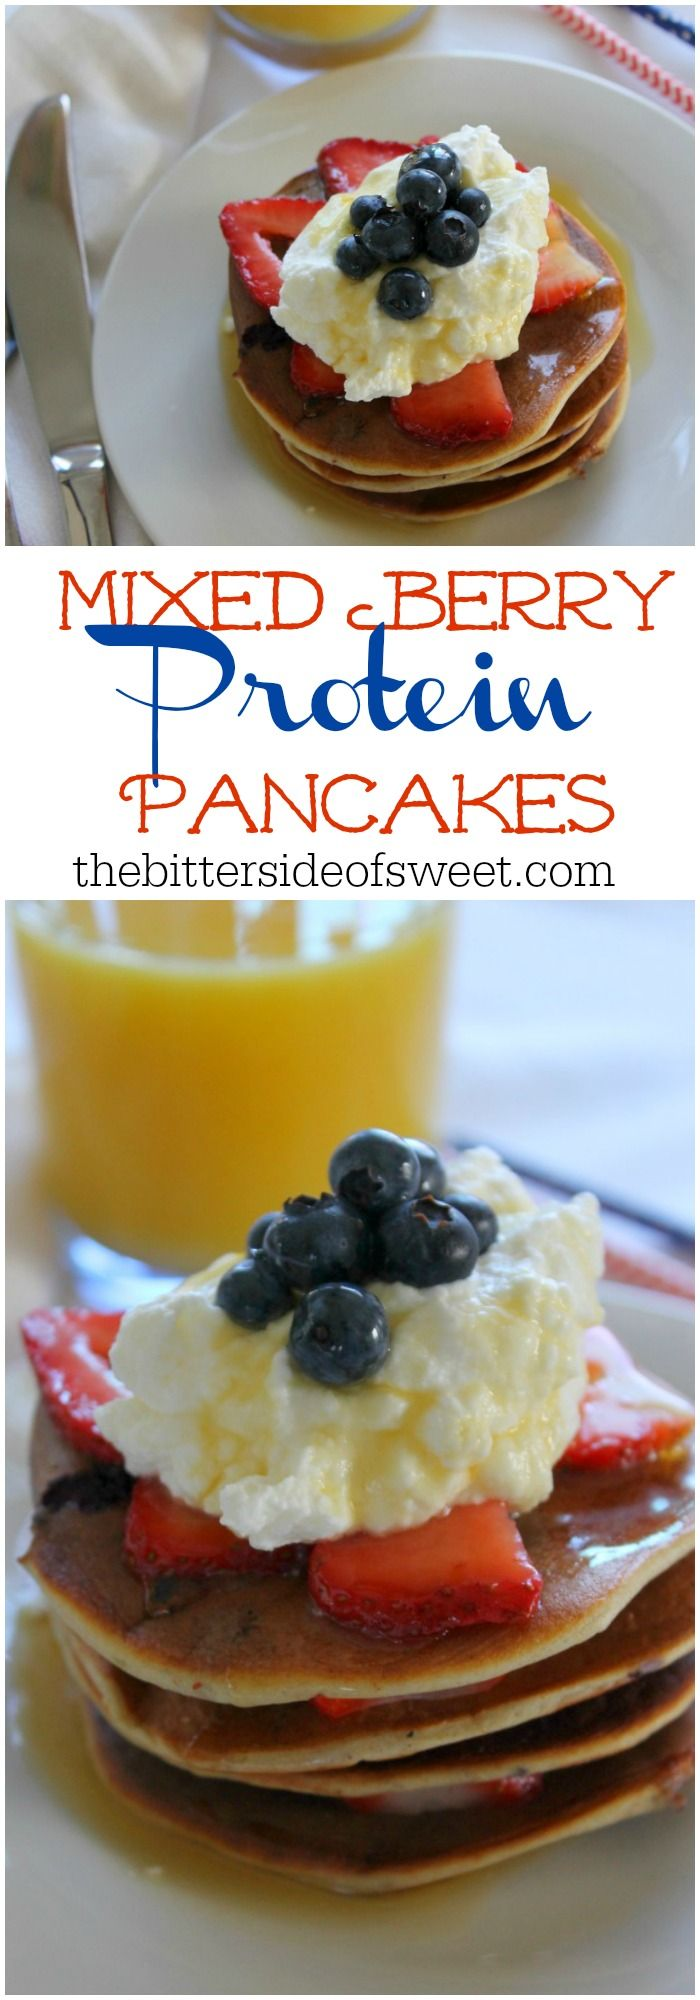 Mixed Berry Protein Pancakes Image